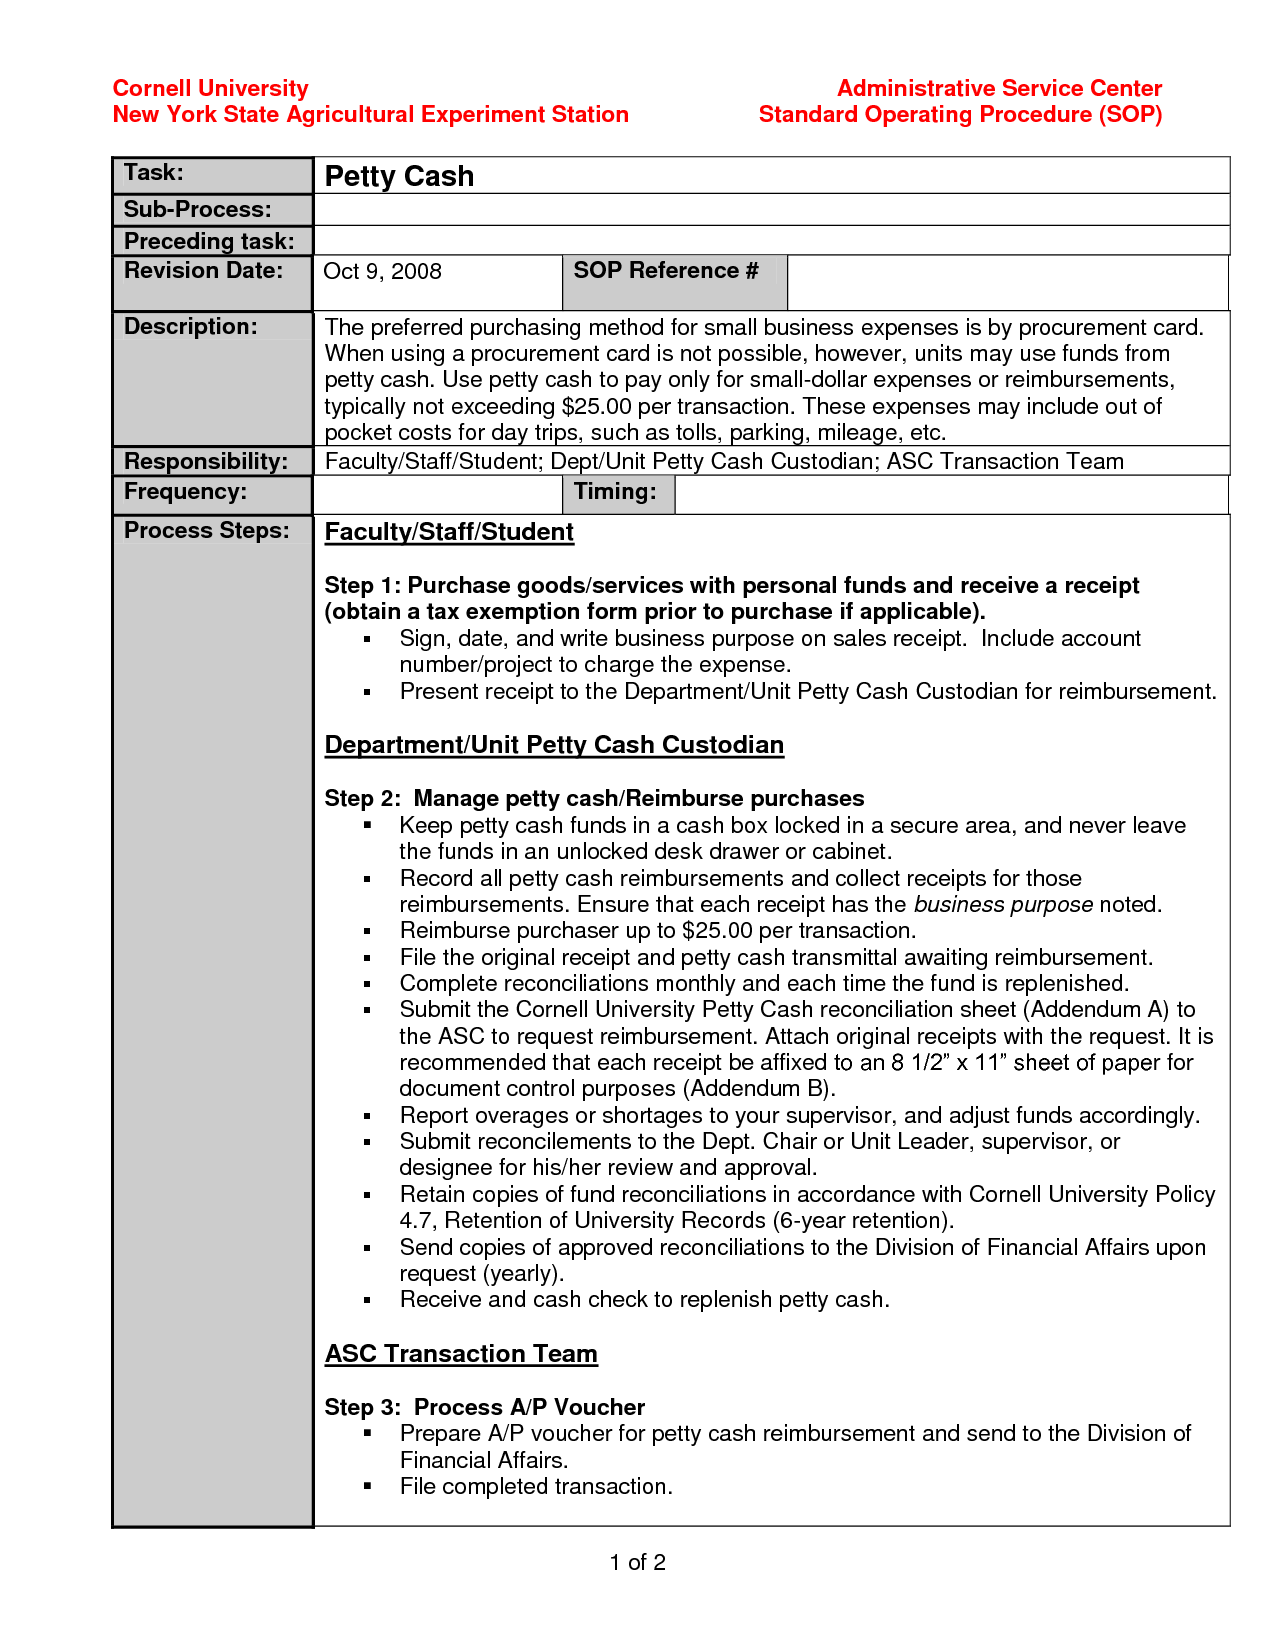 Standard Operating Procedure Template Example eVq8bwf6 | supervisor ...